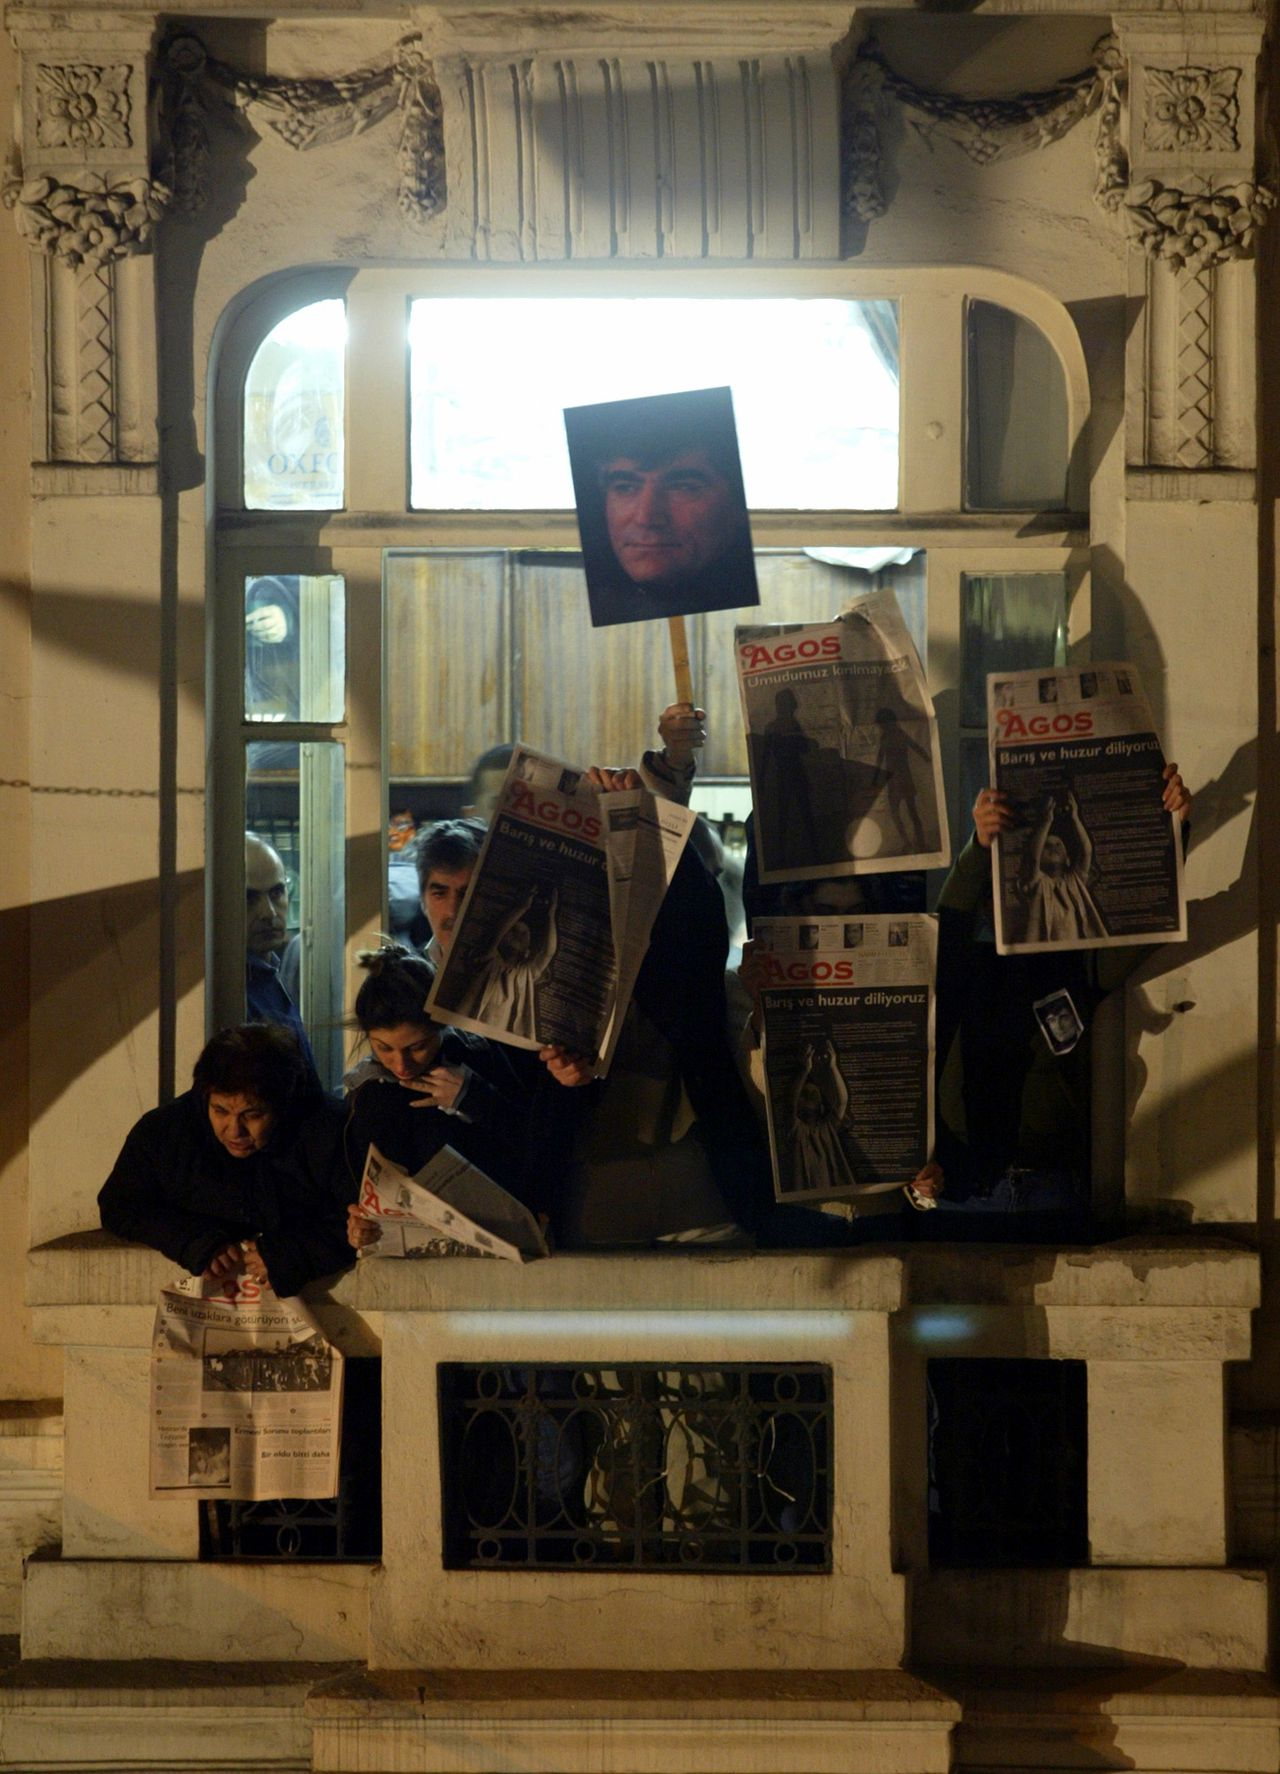 De redactie van Hrant Dinks krant Agos na de moord. Foto AP Employees of the Armenian newspaper Agos display a picture of Hrant Dink and the copies of their newspapers from their office building during a protest Istanbul, Turkey, Friday, Jan. 19, 2007. The murder of Hrant Dink, one of the most prominent voices of Turkey's shrinking Armenian community, sparked protests and international condemnation from Europe, Armenia, the U.S. and numerous media freedom and human rights organizations. Thousands of Turks marched down the street where the journalist, Hrant Dink, was killed. (AP Photo/Osman Orsal)